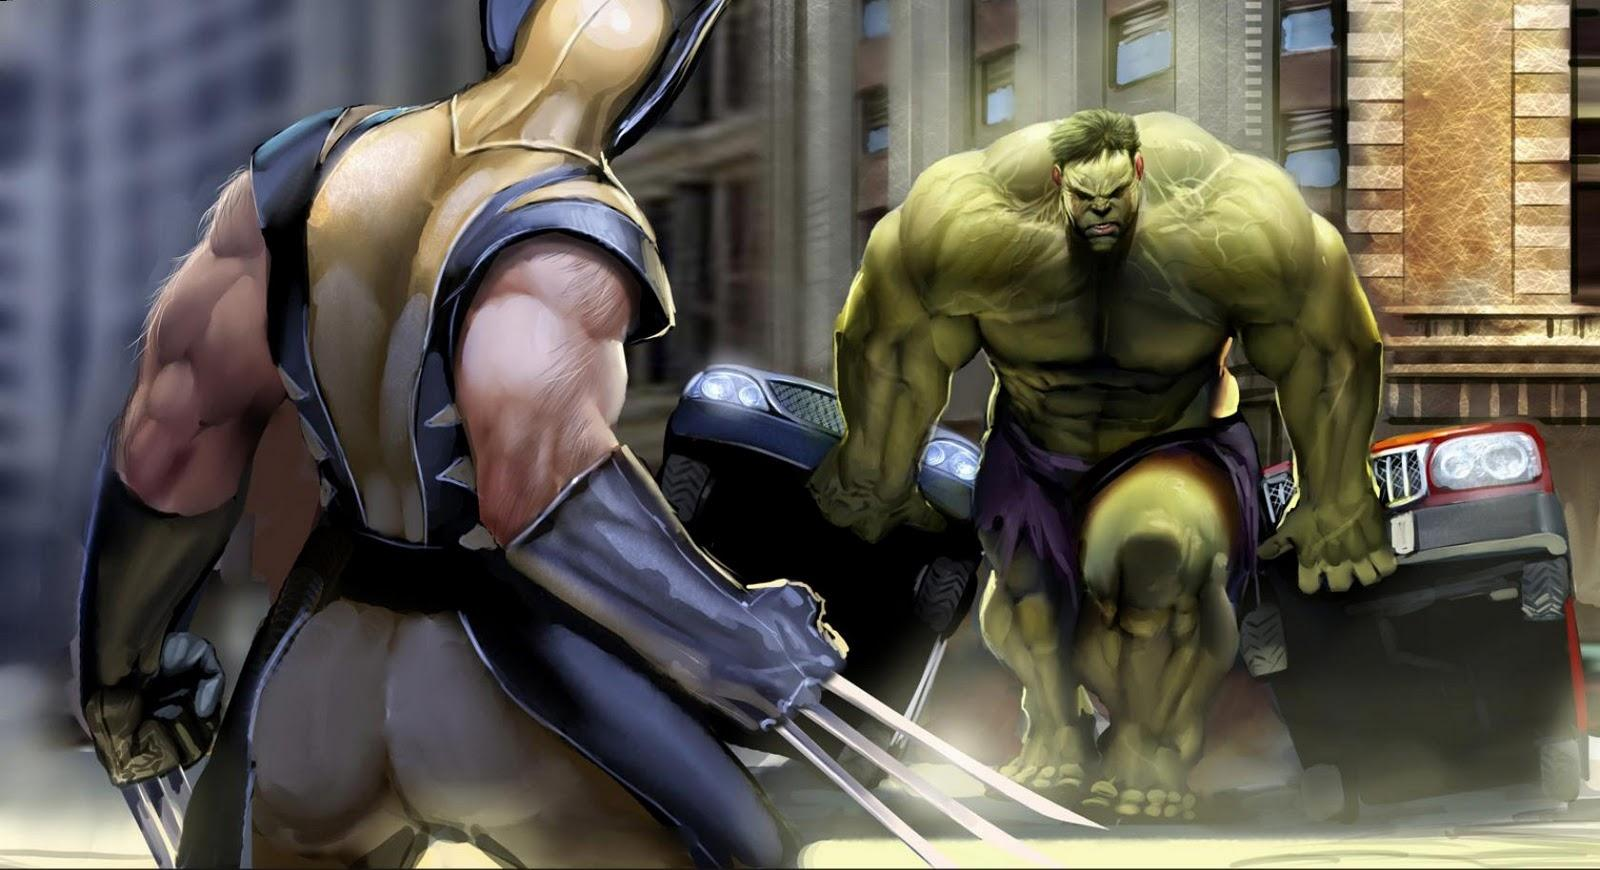 Hulk Comics at 1152 x 864 size wallpapers HD quality